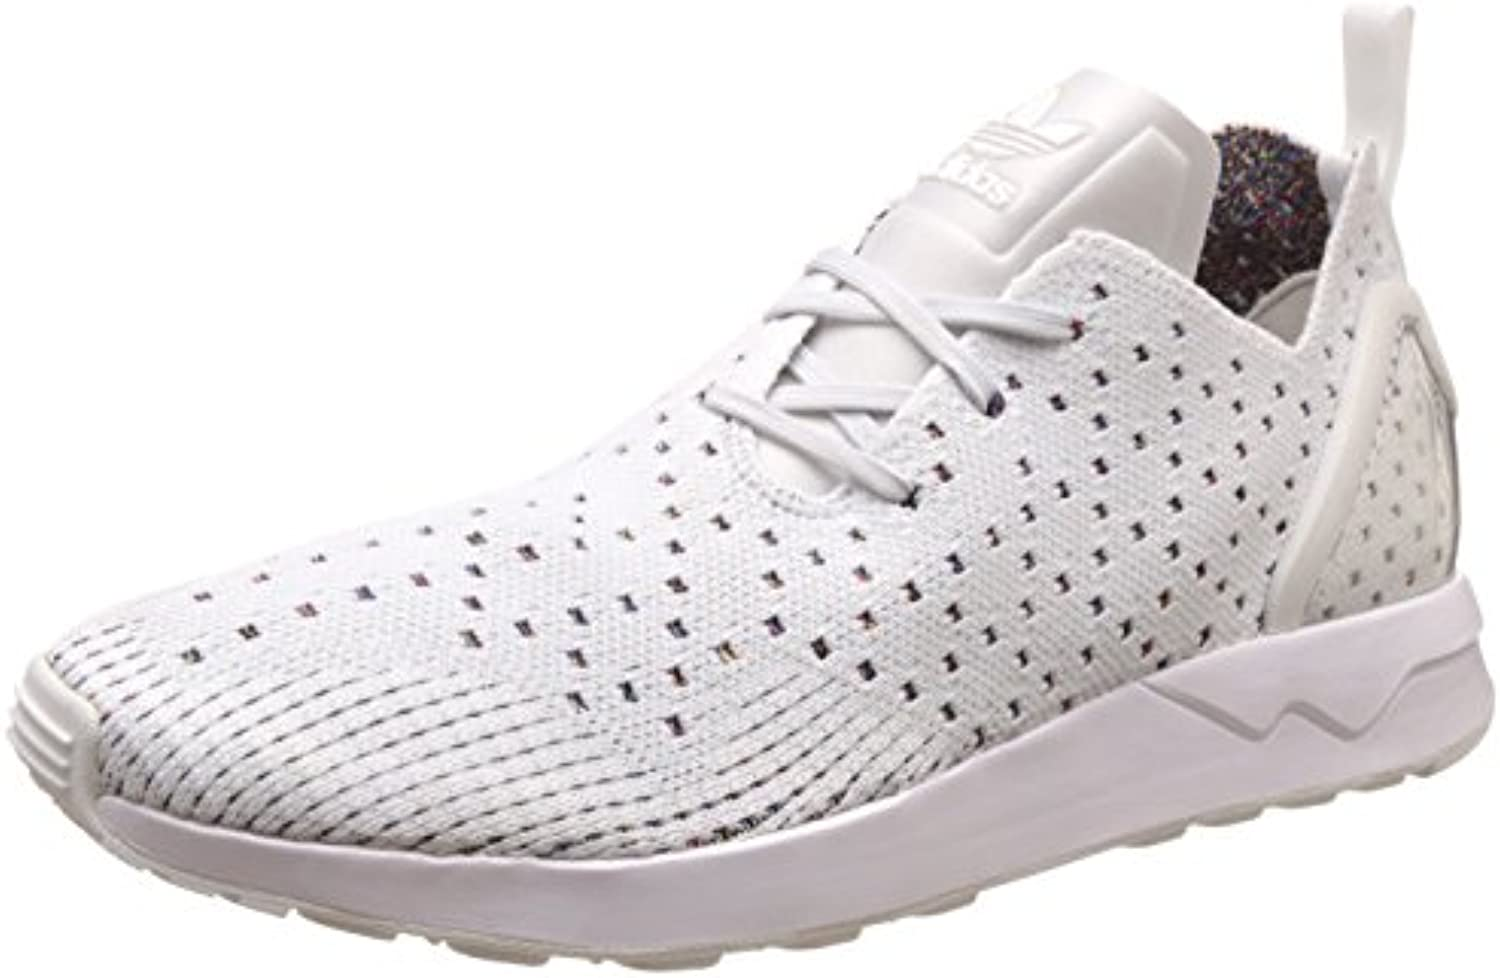 BUTY BUTY BUTY ADIDAS ZX FLUX ADV ASYM PRIMEKNIT S76369 - 42 | Outlet Store